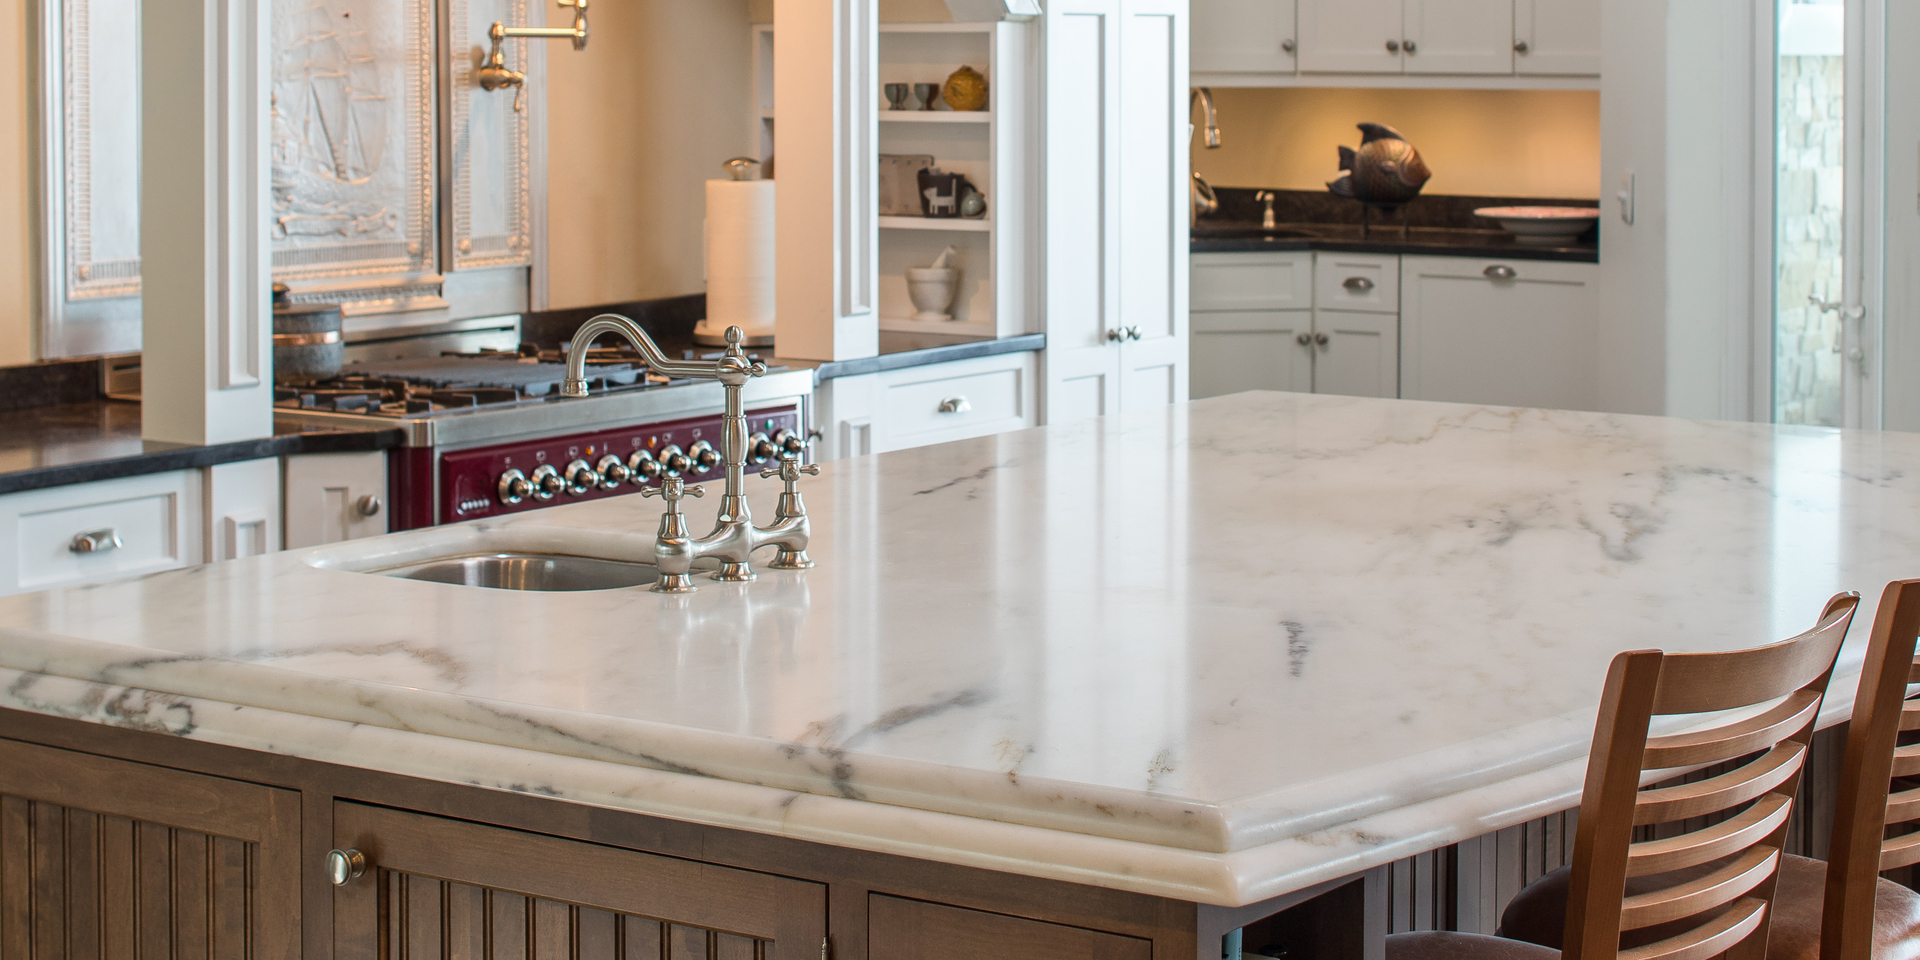 marble countertop kitchen formica best pinkbungalow cheap countertops images on faux and remodeling updated renovations not pinterest